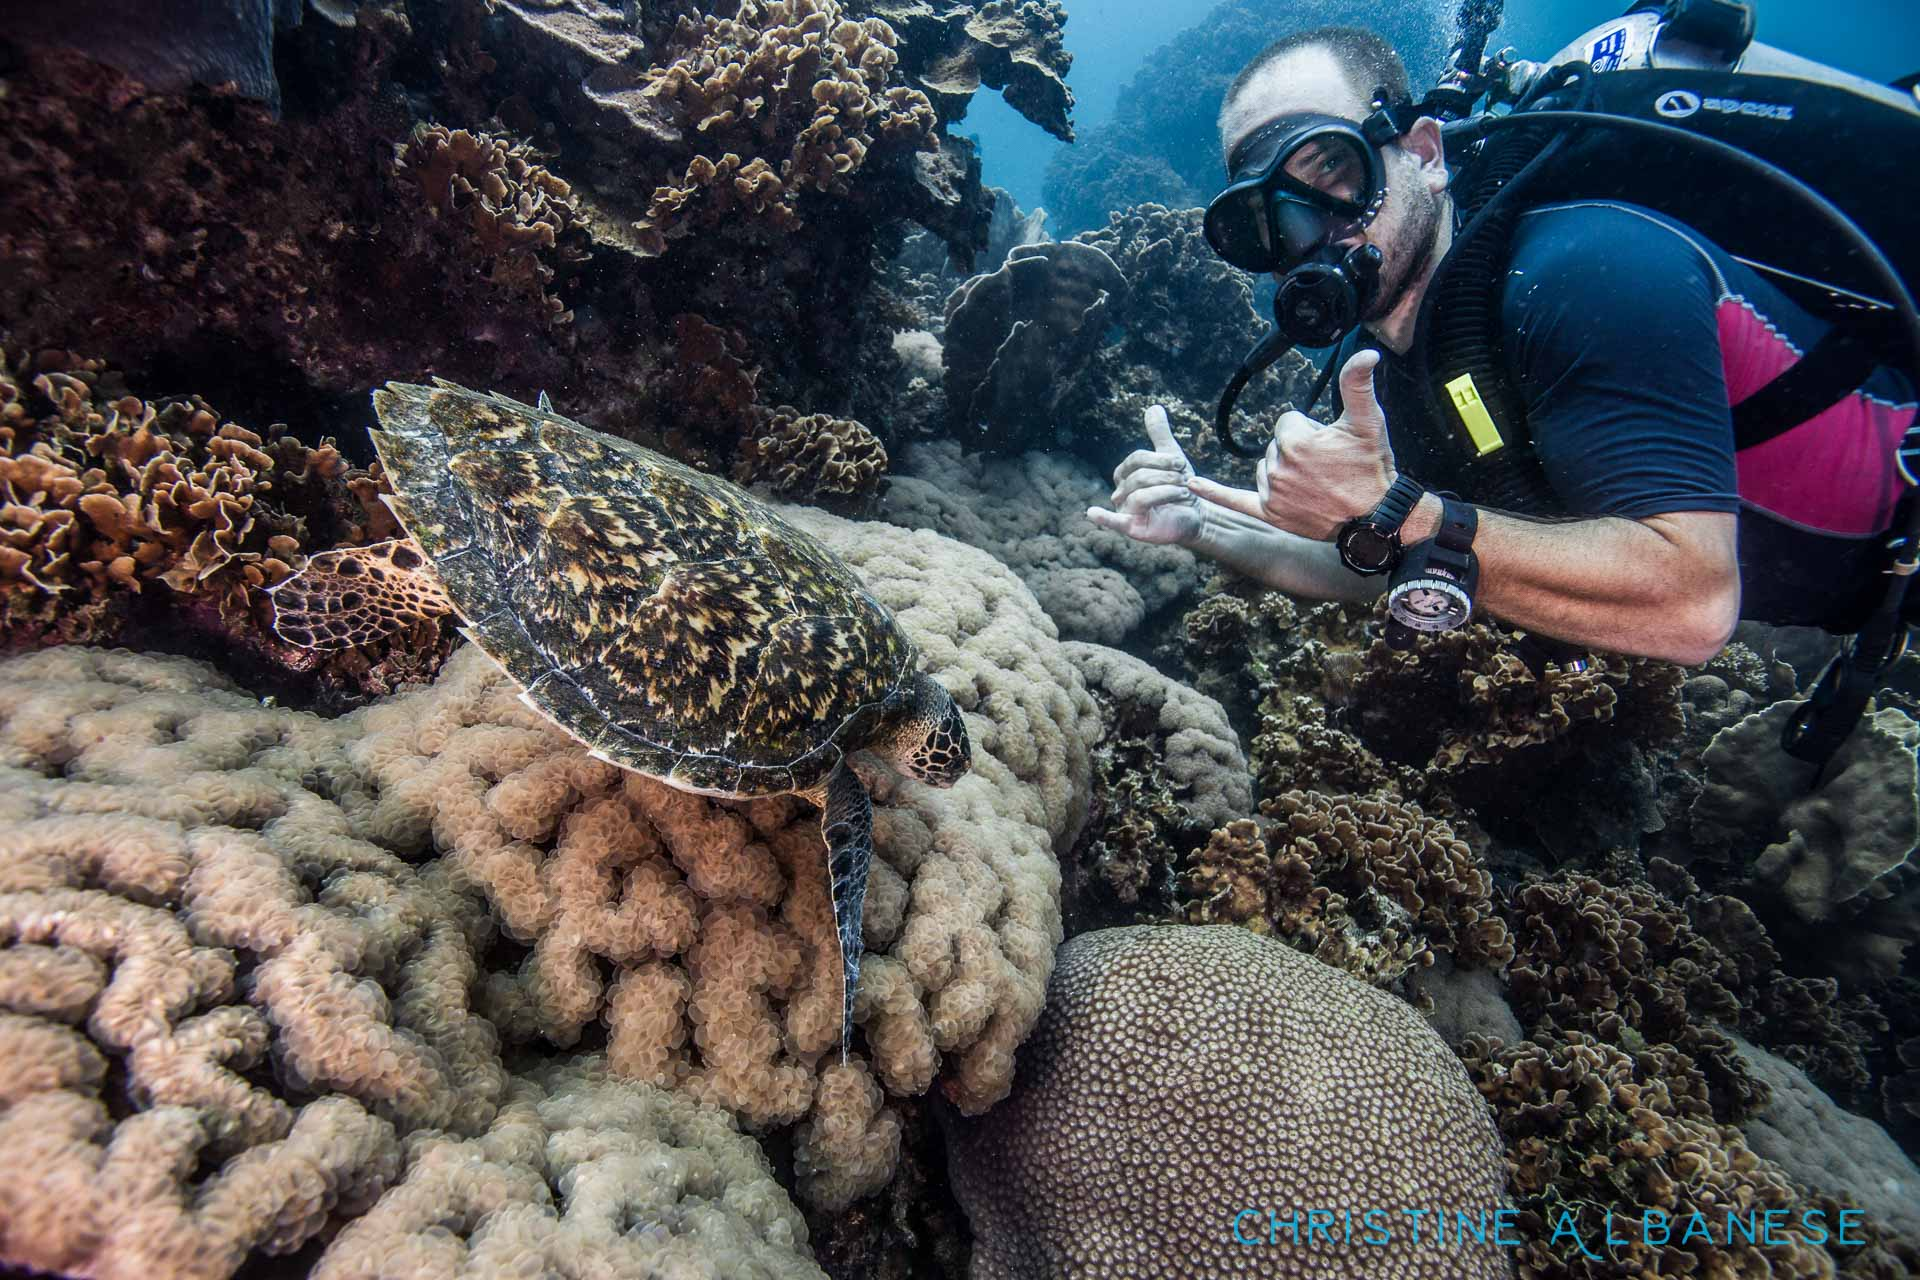 Who doesn't love turtles? This little hawksbill was munching on some bubble coral while my boyfriend @antaltoth tried to make friends with it 😉  #wideangle #ikelite #ds160 #canon6d #canon1740 #uwphotography #underwater #underwaterdiving #underwaterphotography #japanesegardens #kohtao #thailand #scuba #diving #hawksbill #turtle #hawksbillturtle #adorable #inlove #ocean #adventure #padi